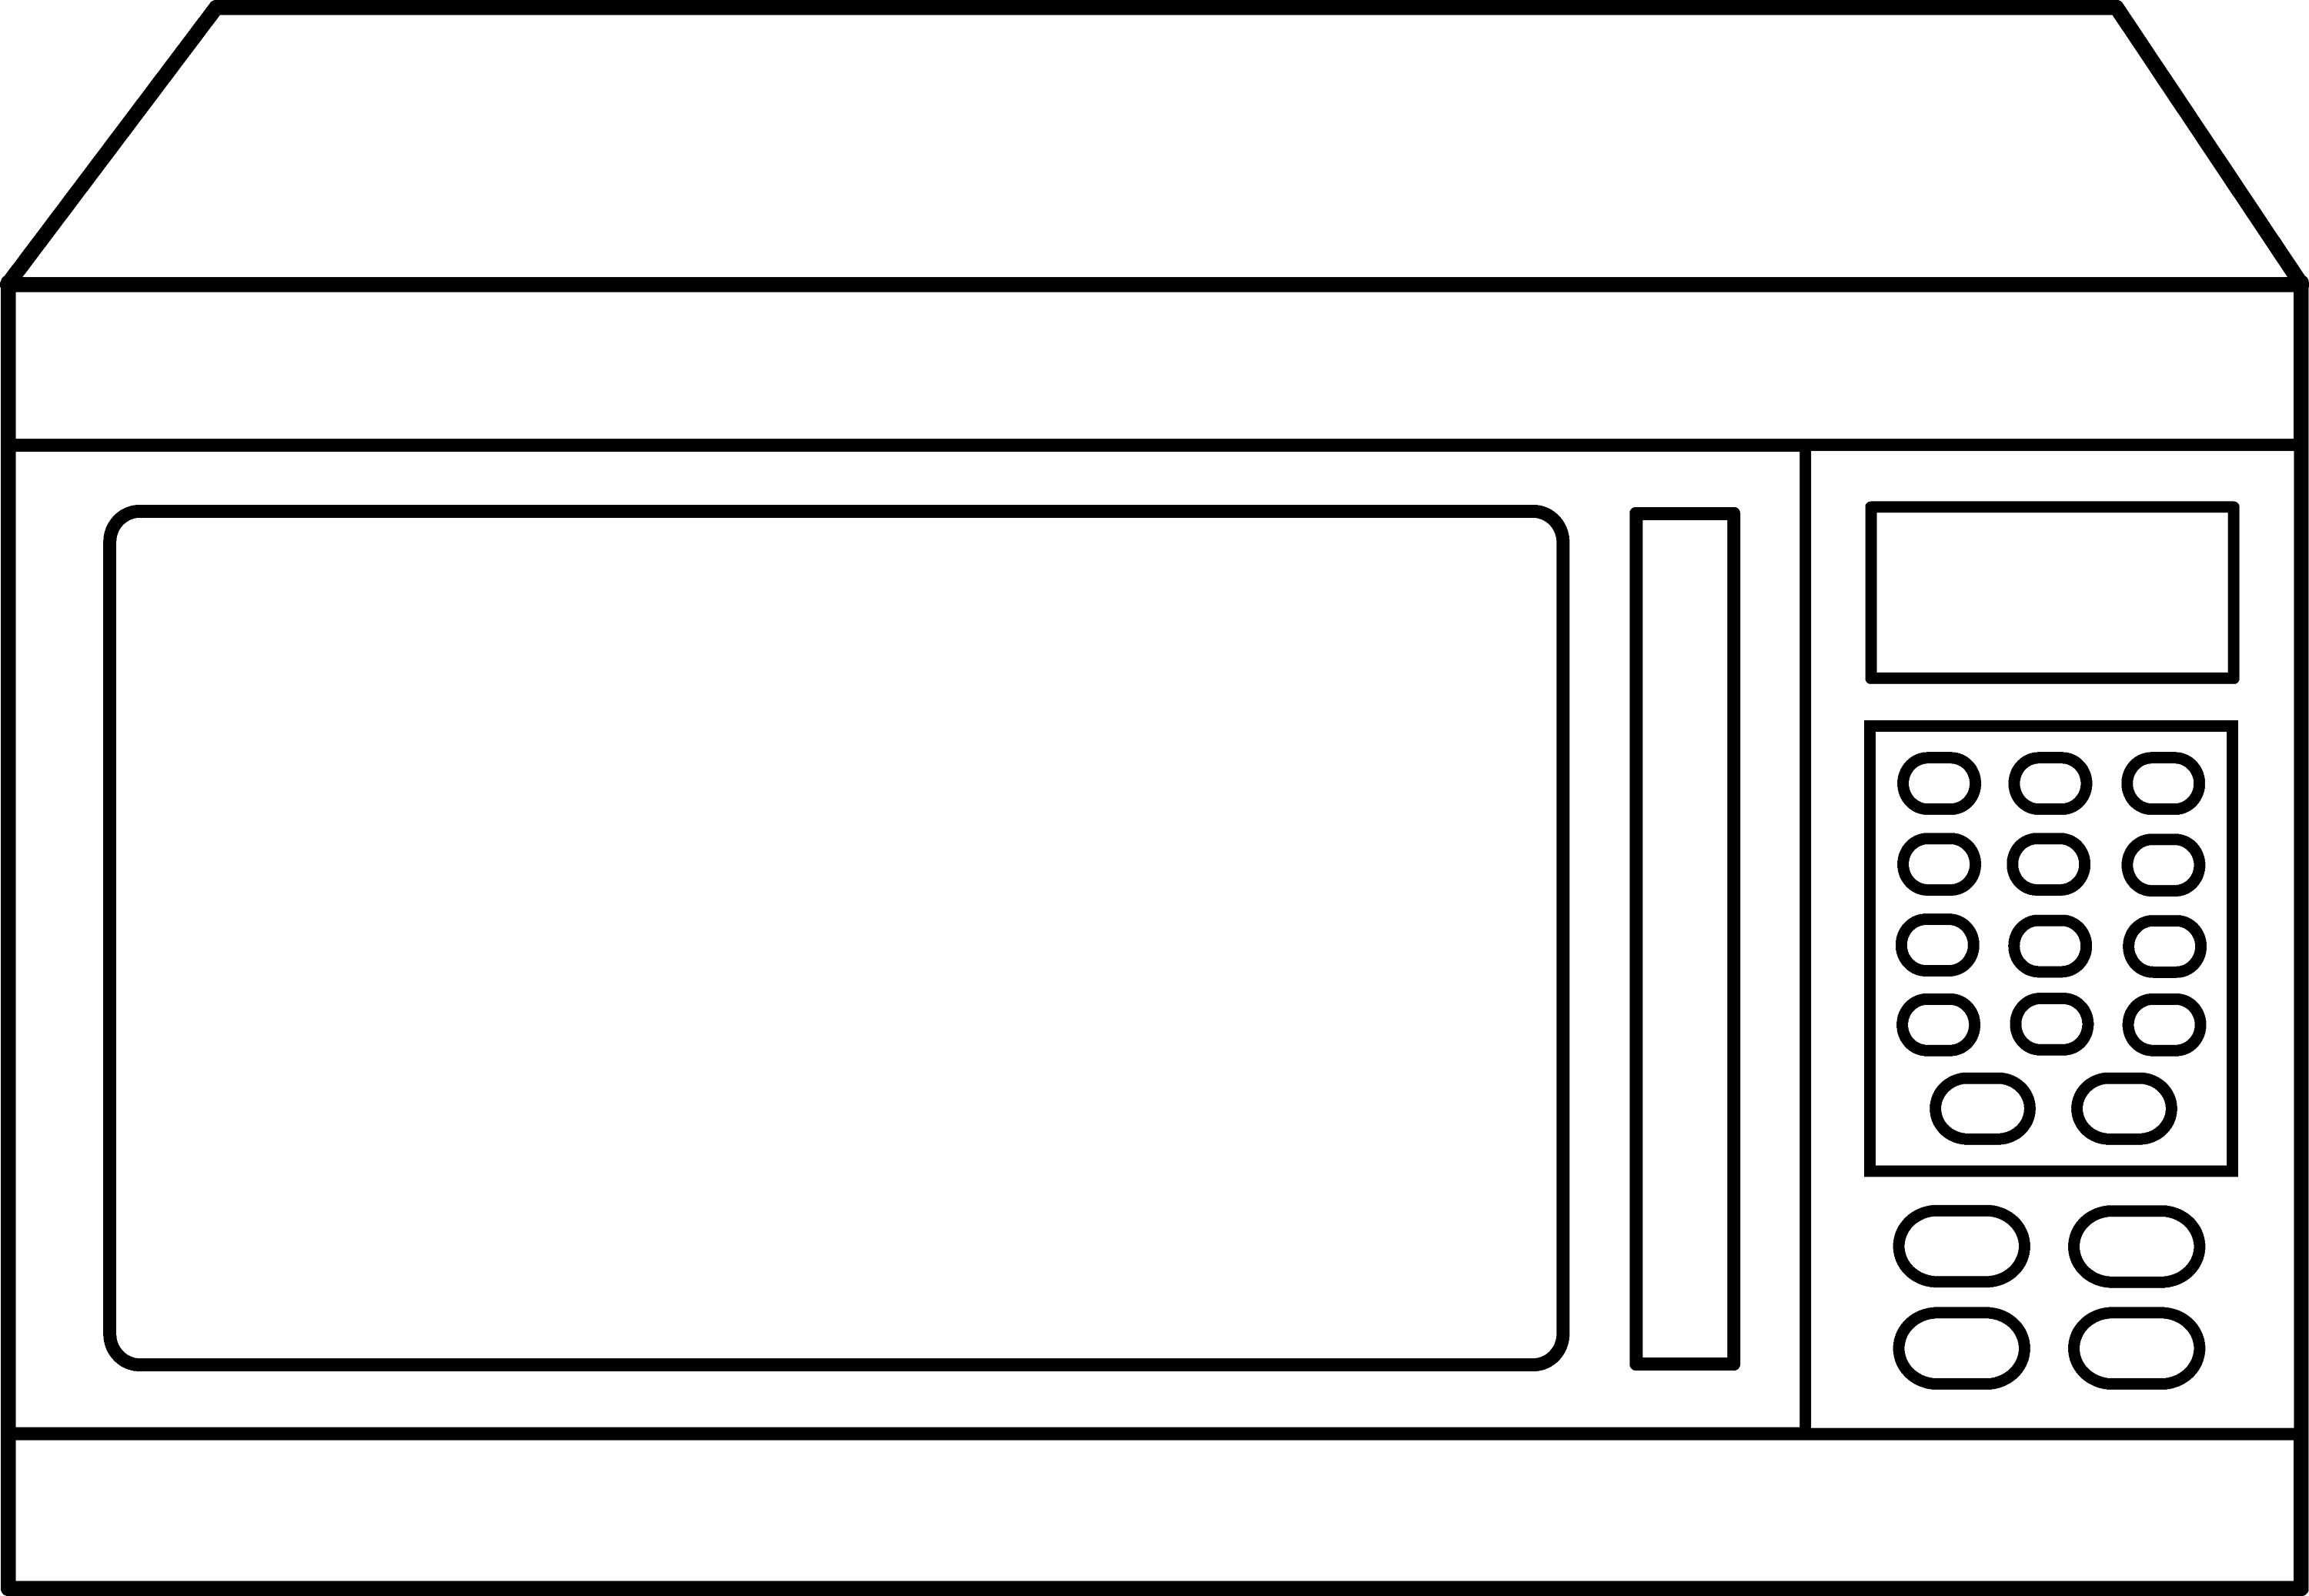 Microwave Oven Outline